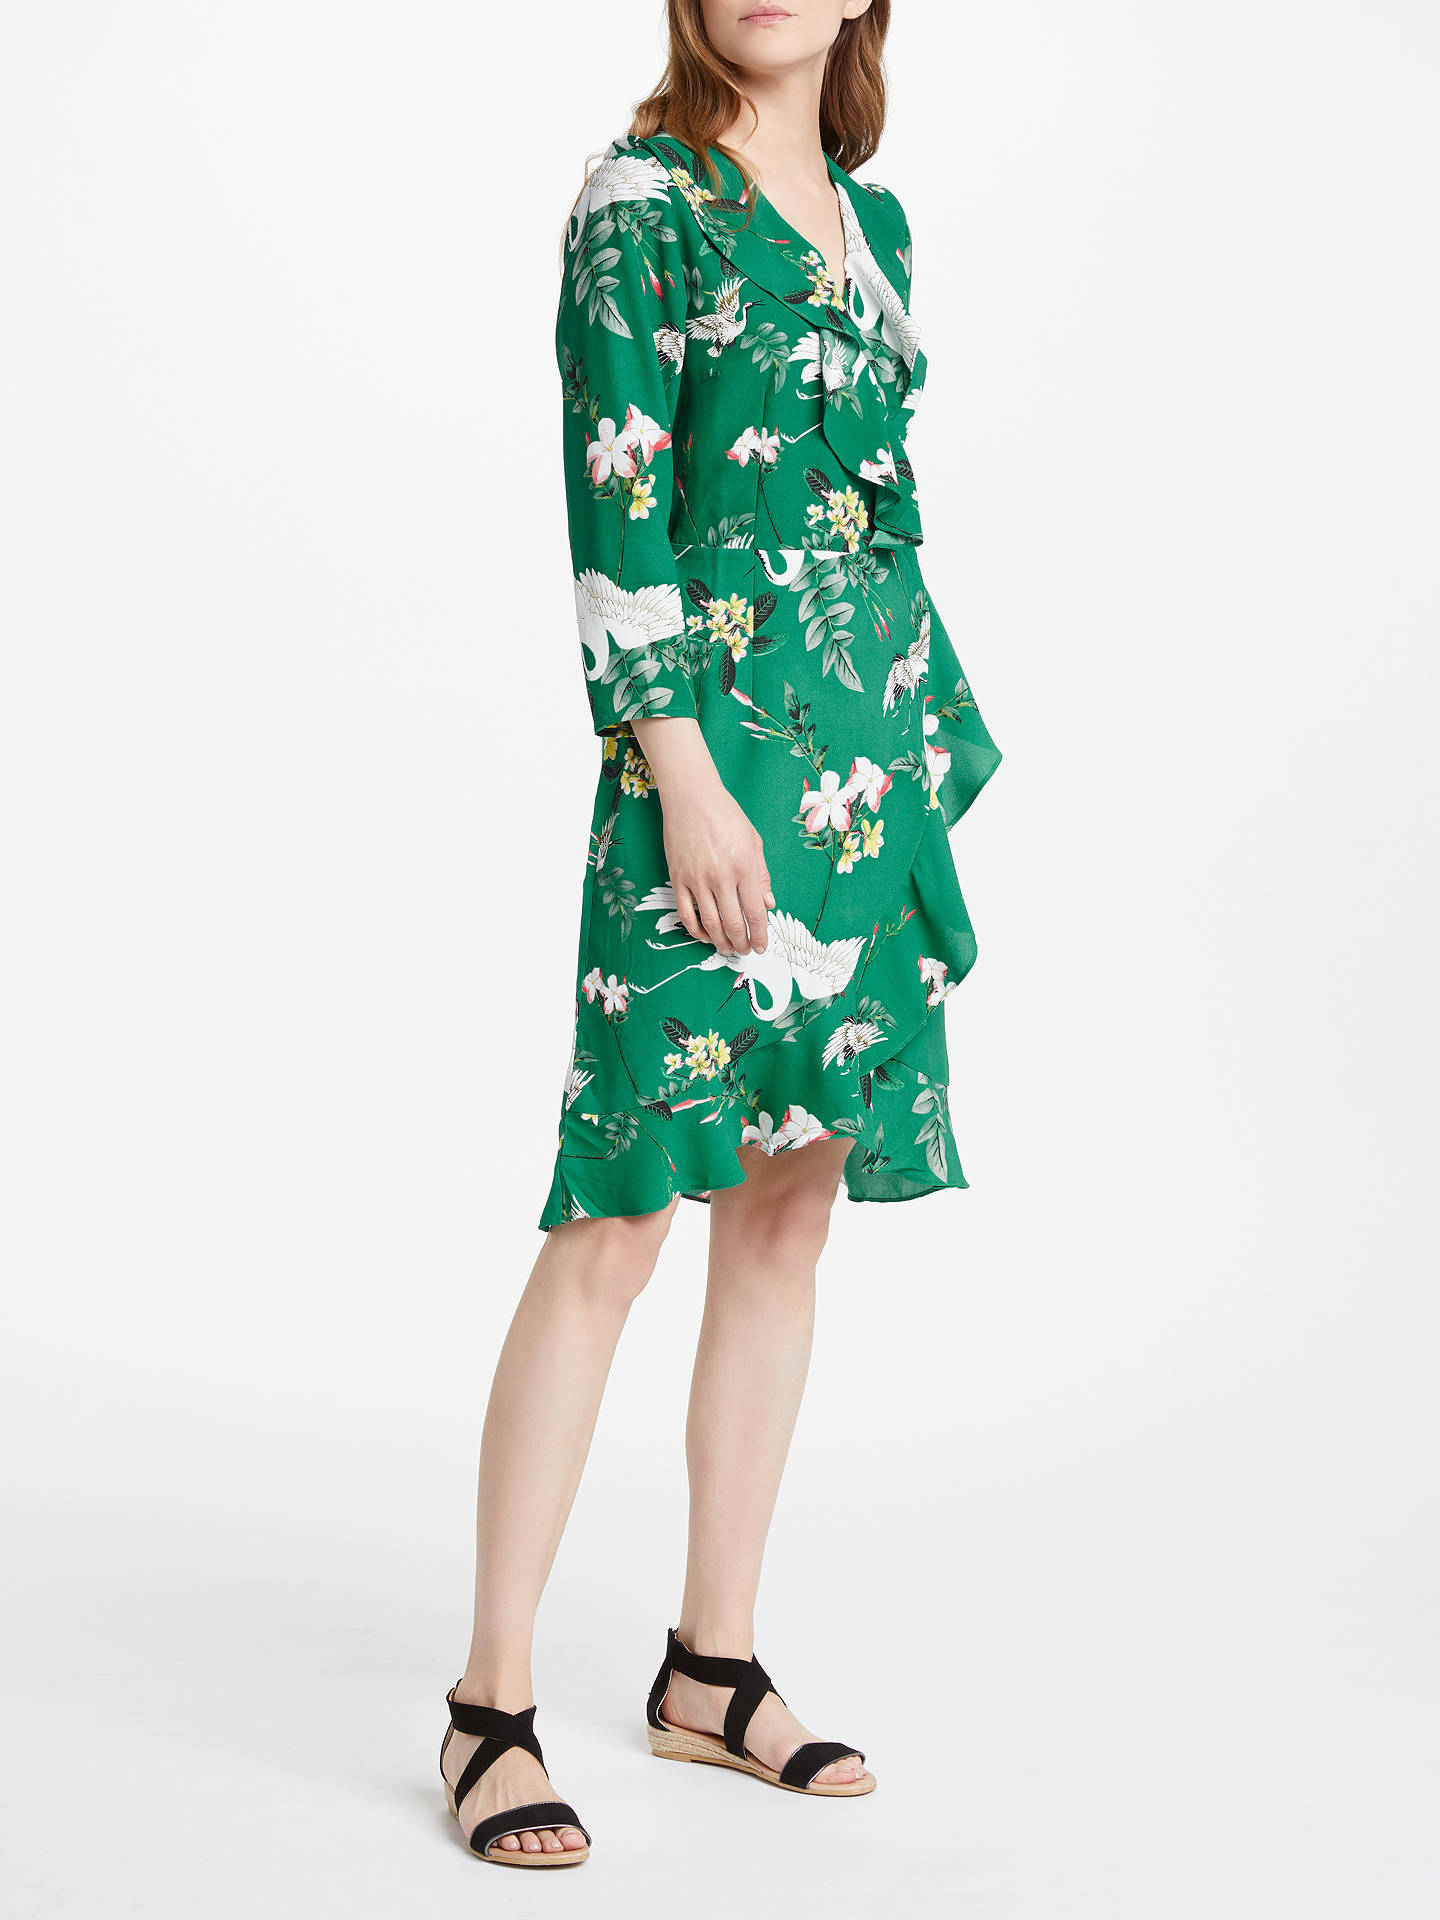 375f872cfd9f ... Buy Y.A.S Crane Wrap Dress, Green, S Online at johnlewis.com ...